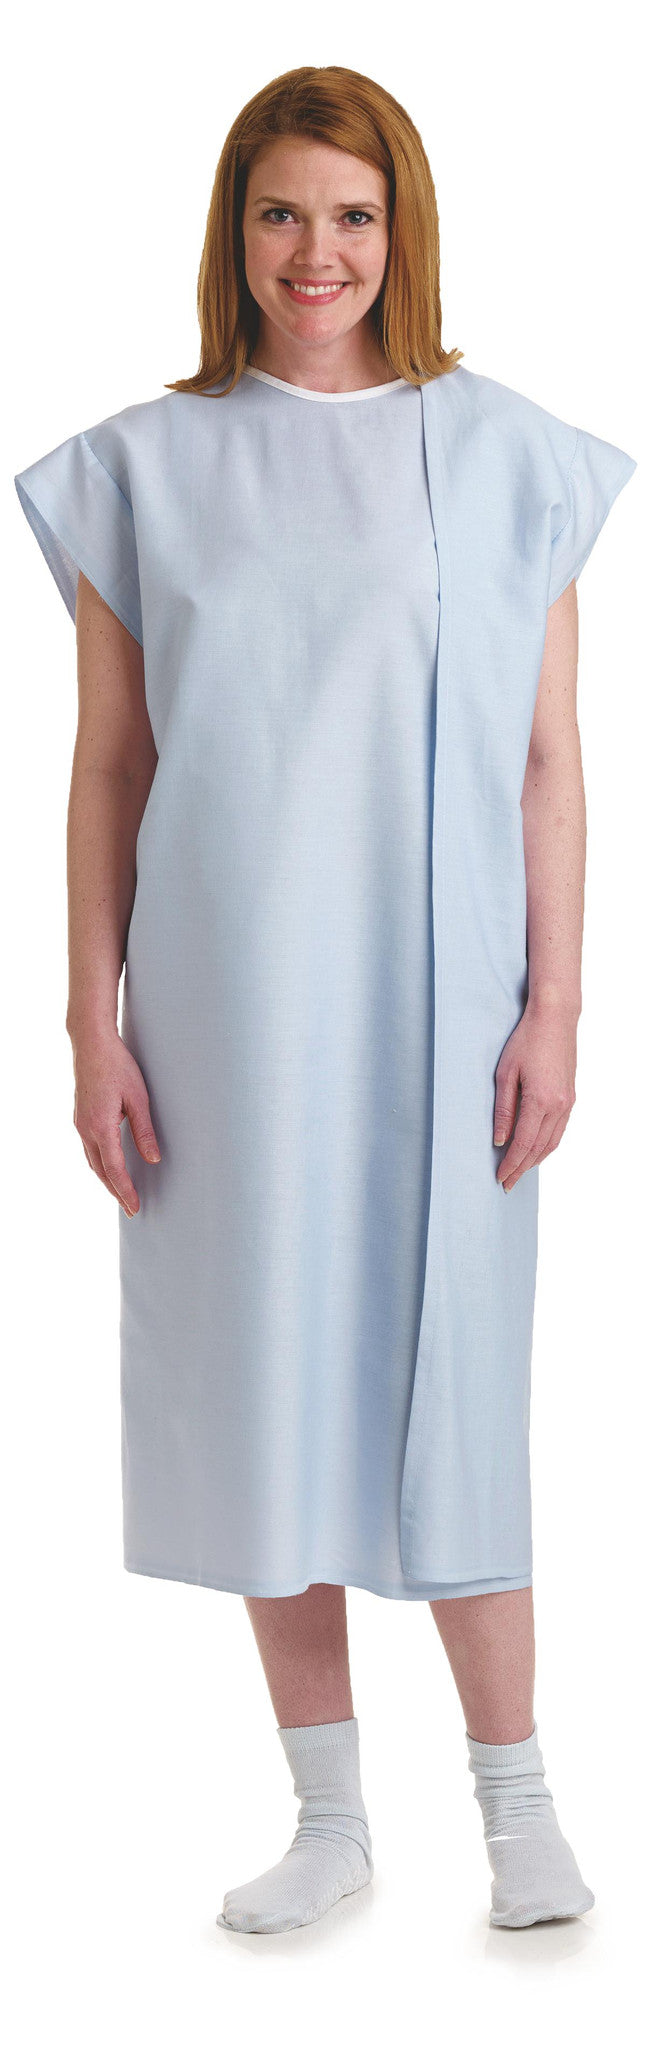 3 Armhole Examination Hospital Gowns Blue Or Gray Bh